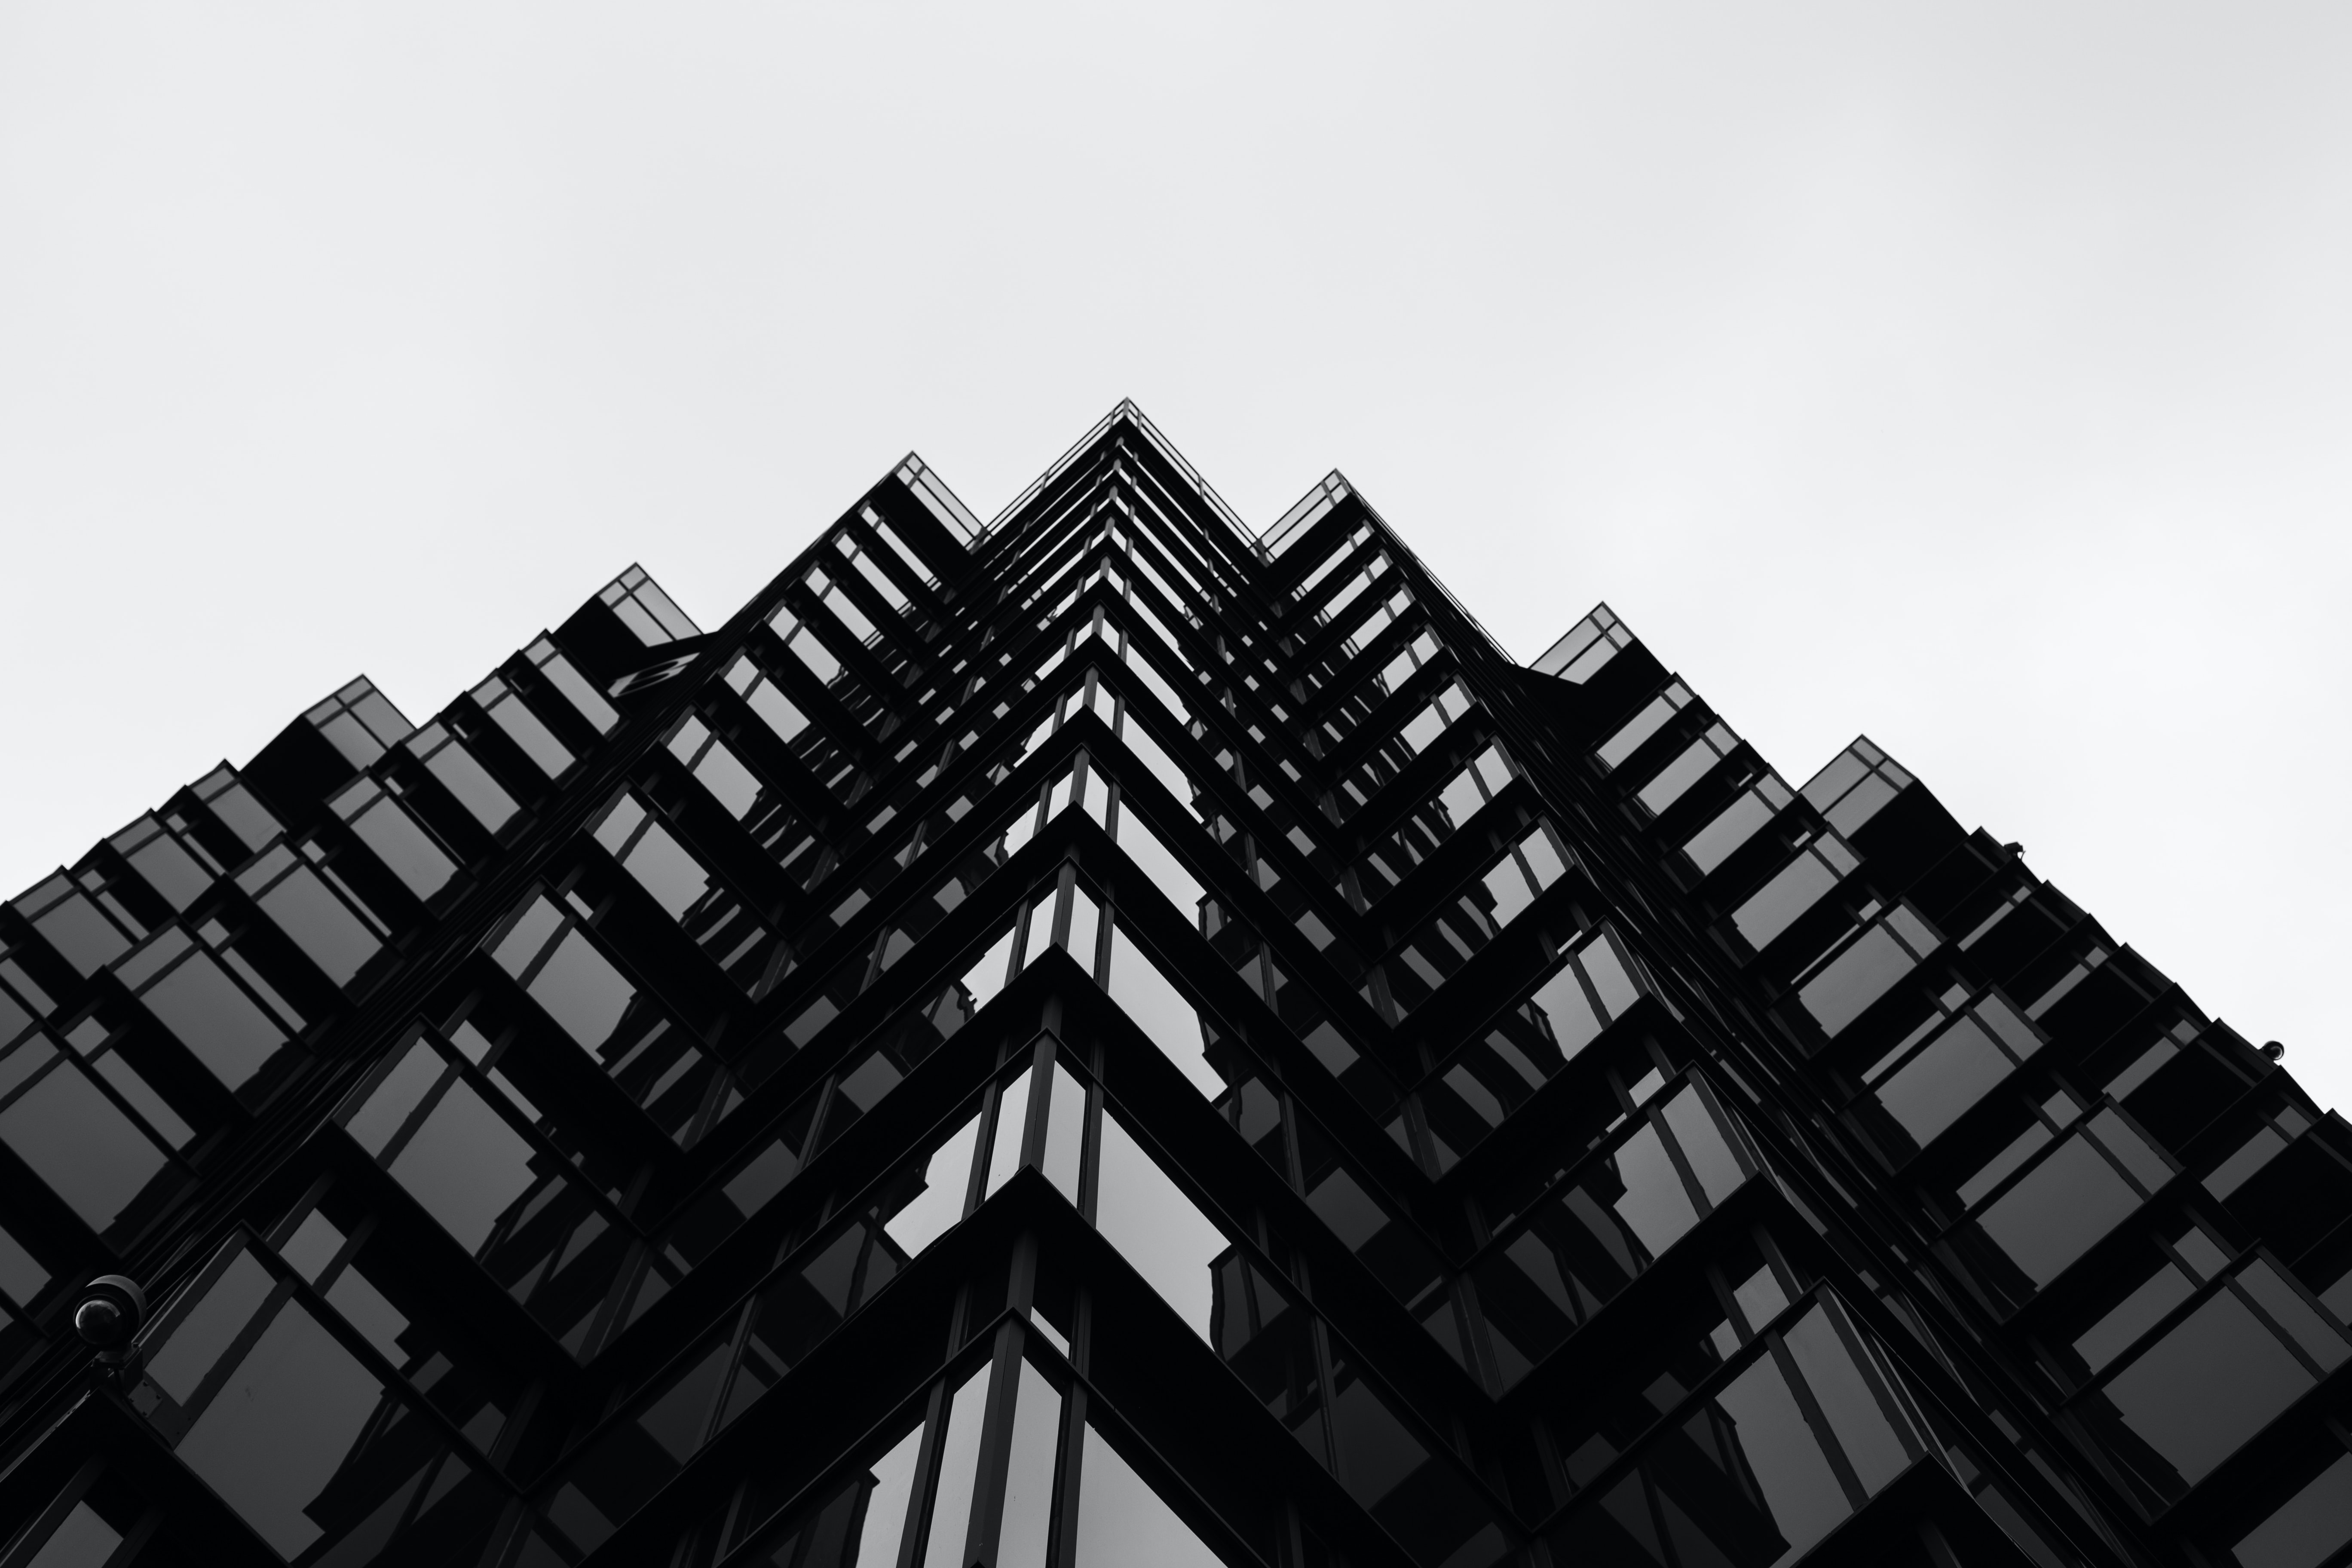 The edges of a wavy skyscraper facade in black and white